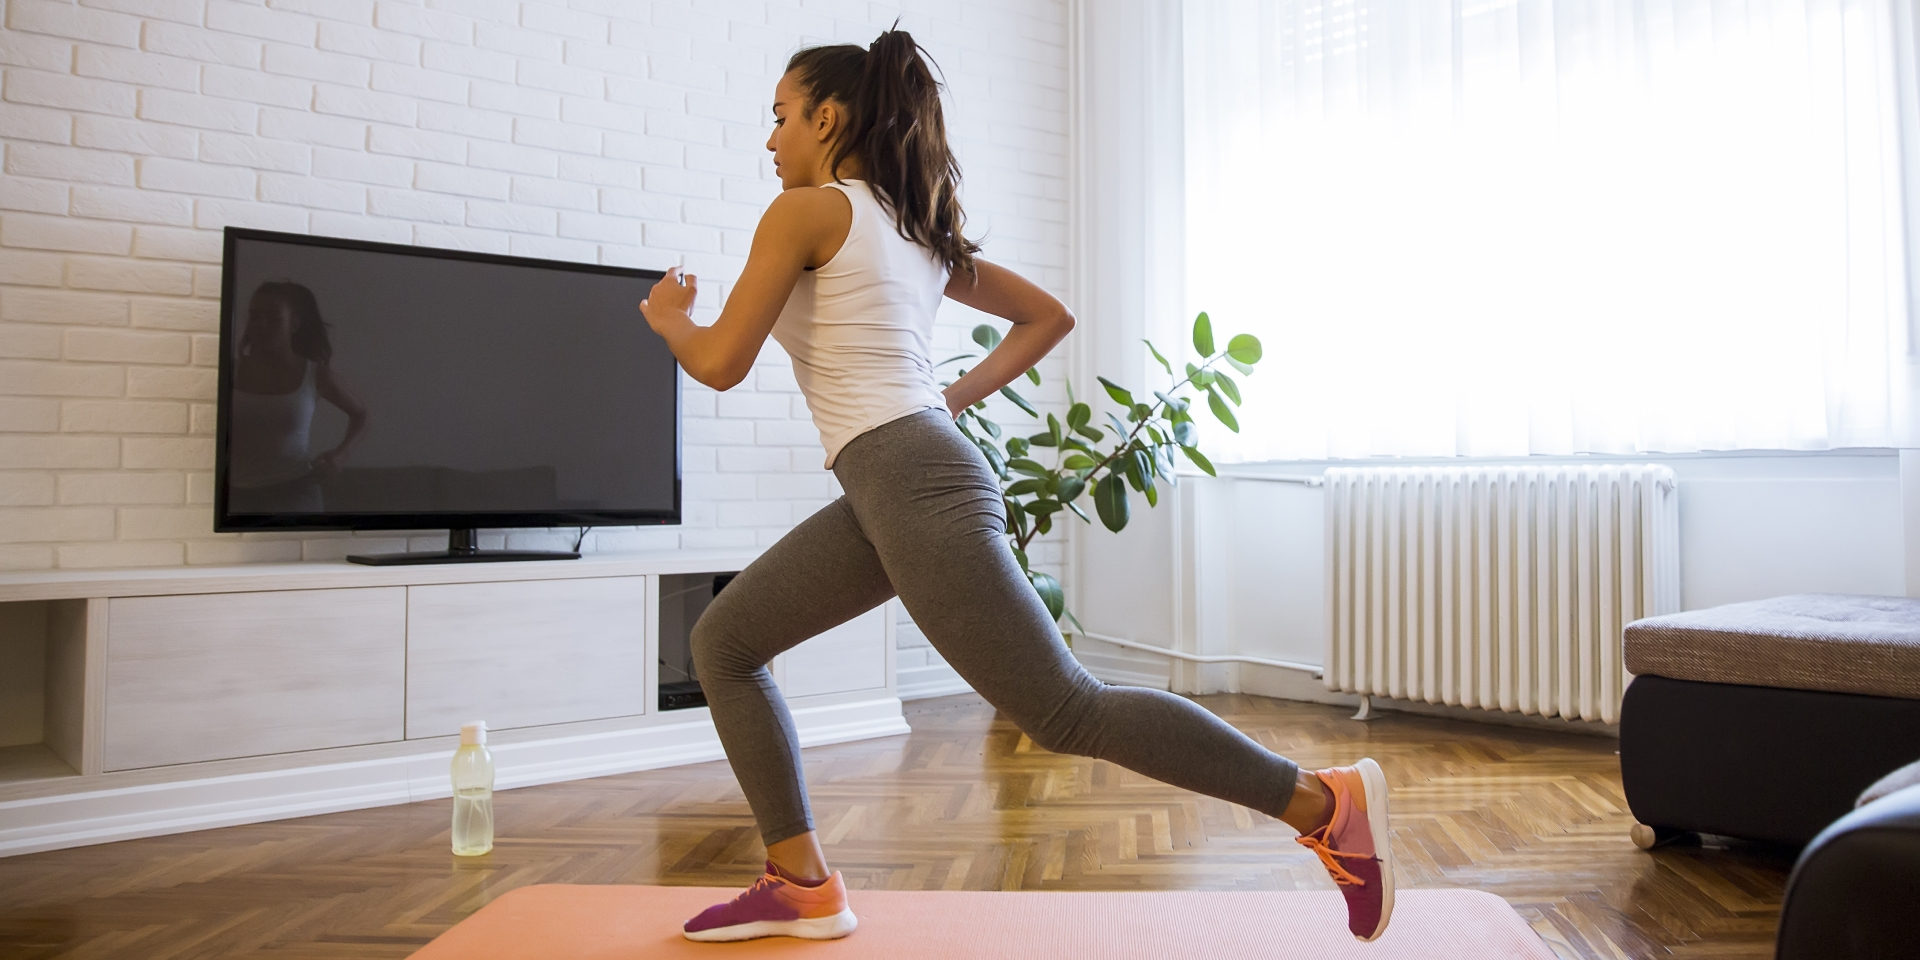 Fitness trainer at home